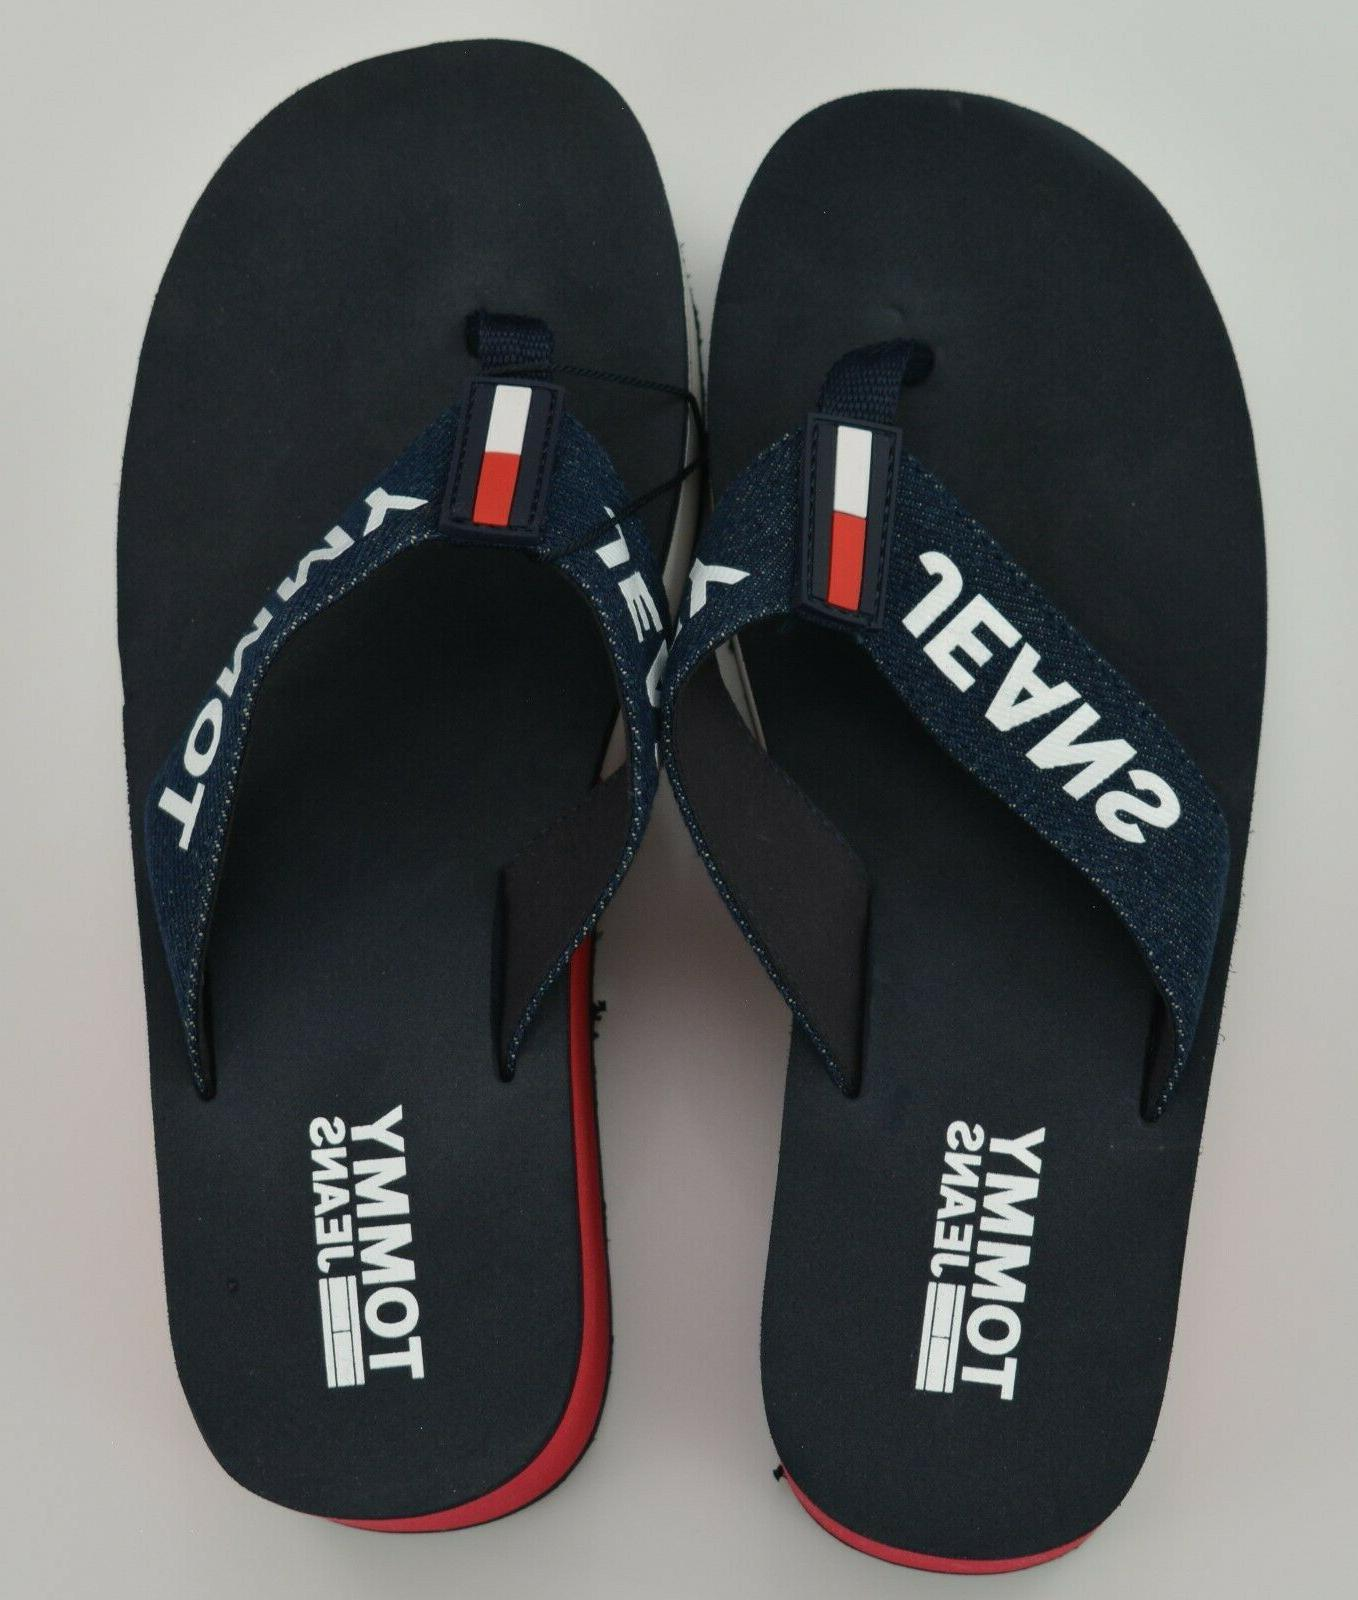 NWT Women's Tommy Hilfiger Jeans Sandals Platforms